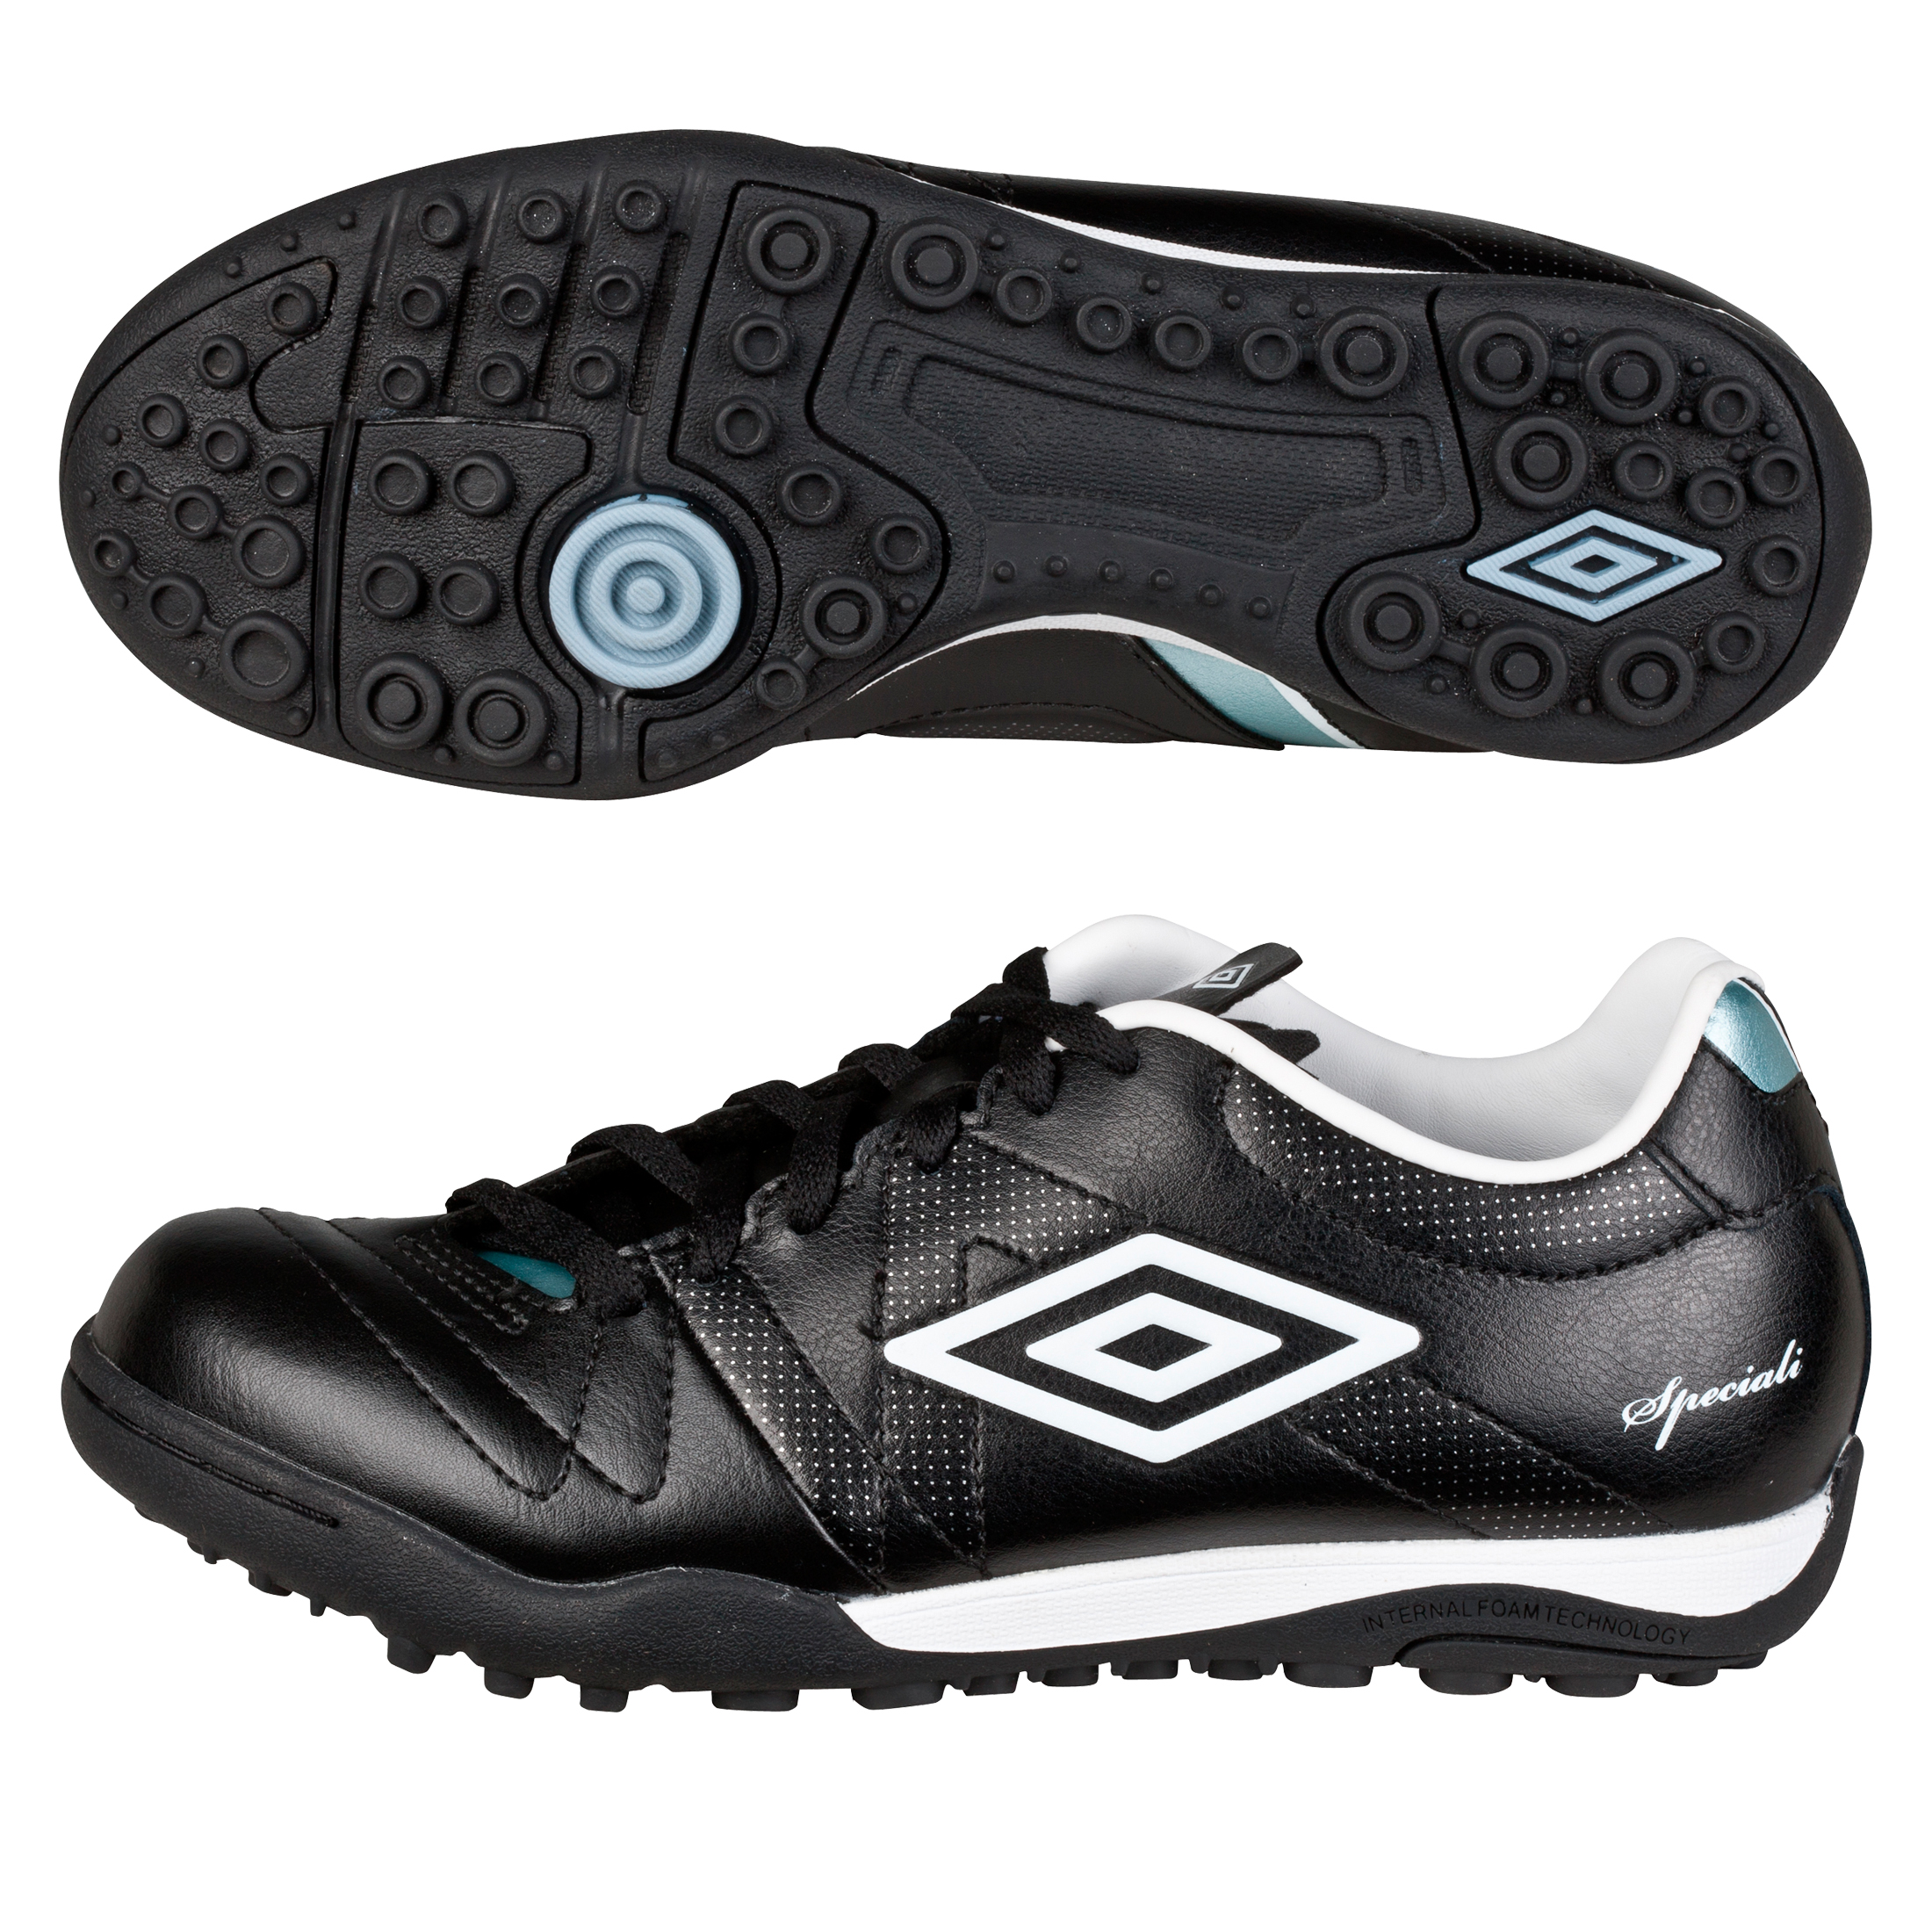 Umbro Speciali 3 Cup Astro Turf Trainers - Black/White/Chrome - Kids